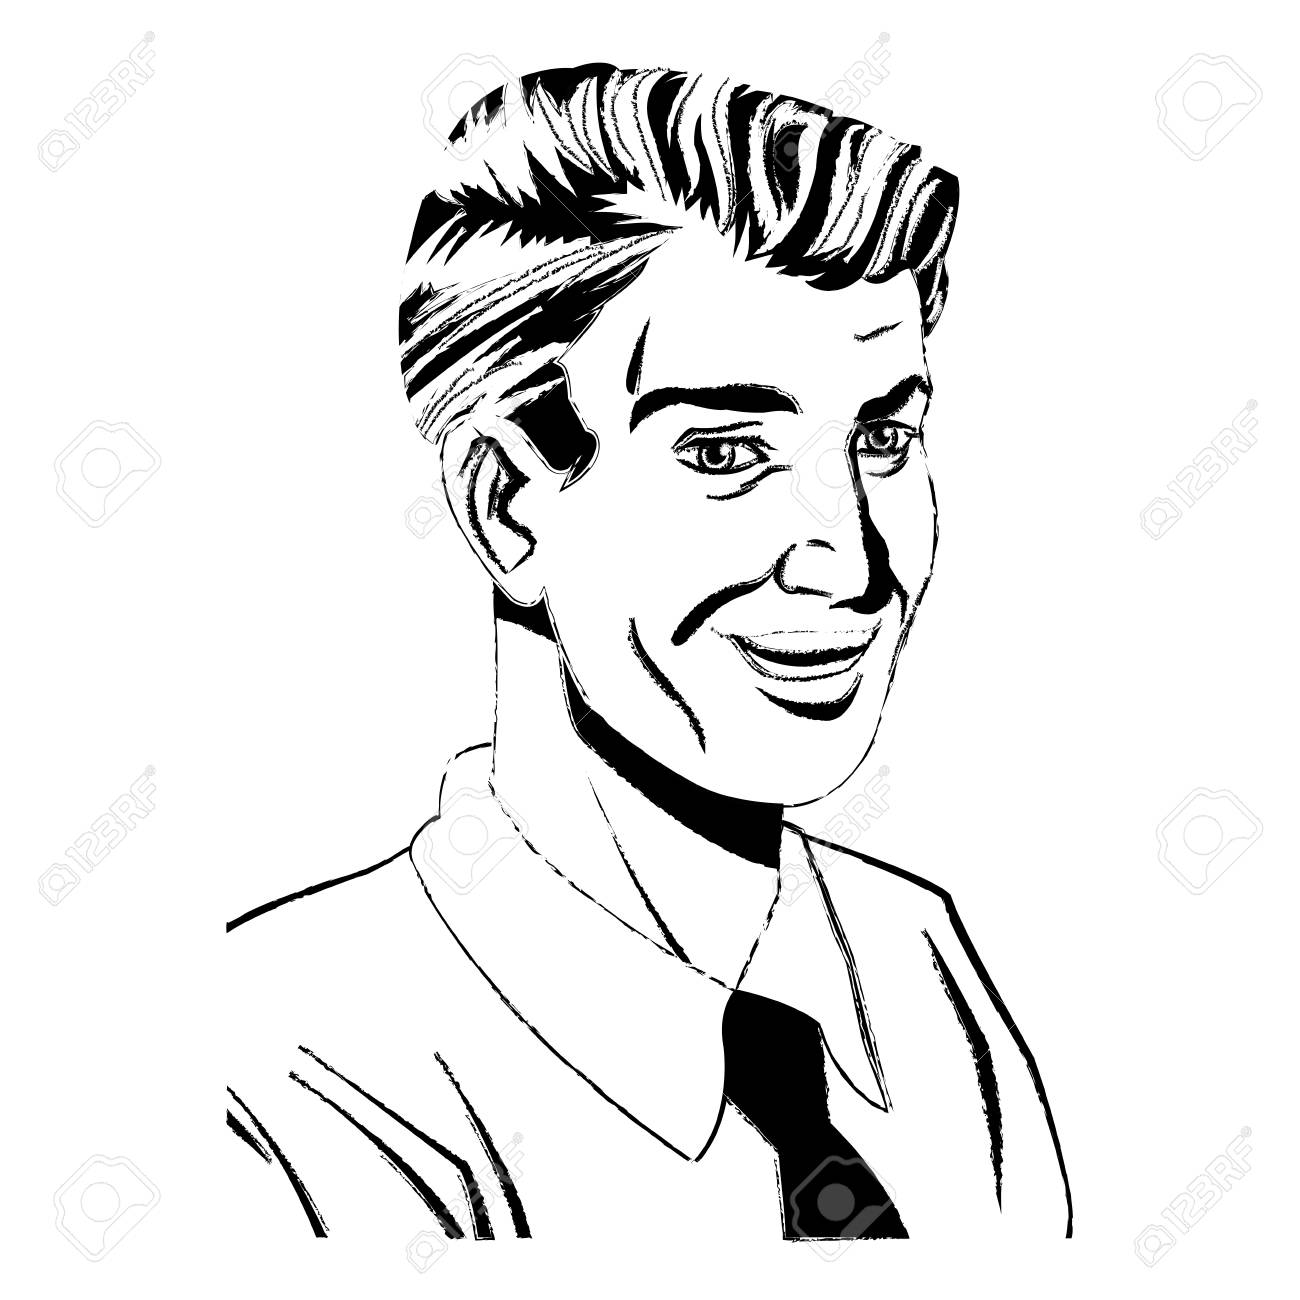 1300x1300 Pop Art Man Laughing Wearing Shirt And Tie Sketch Vector